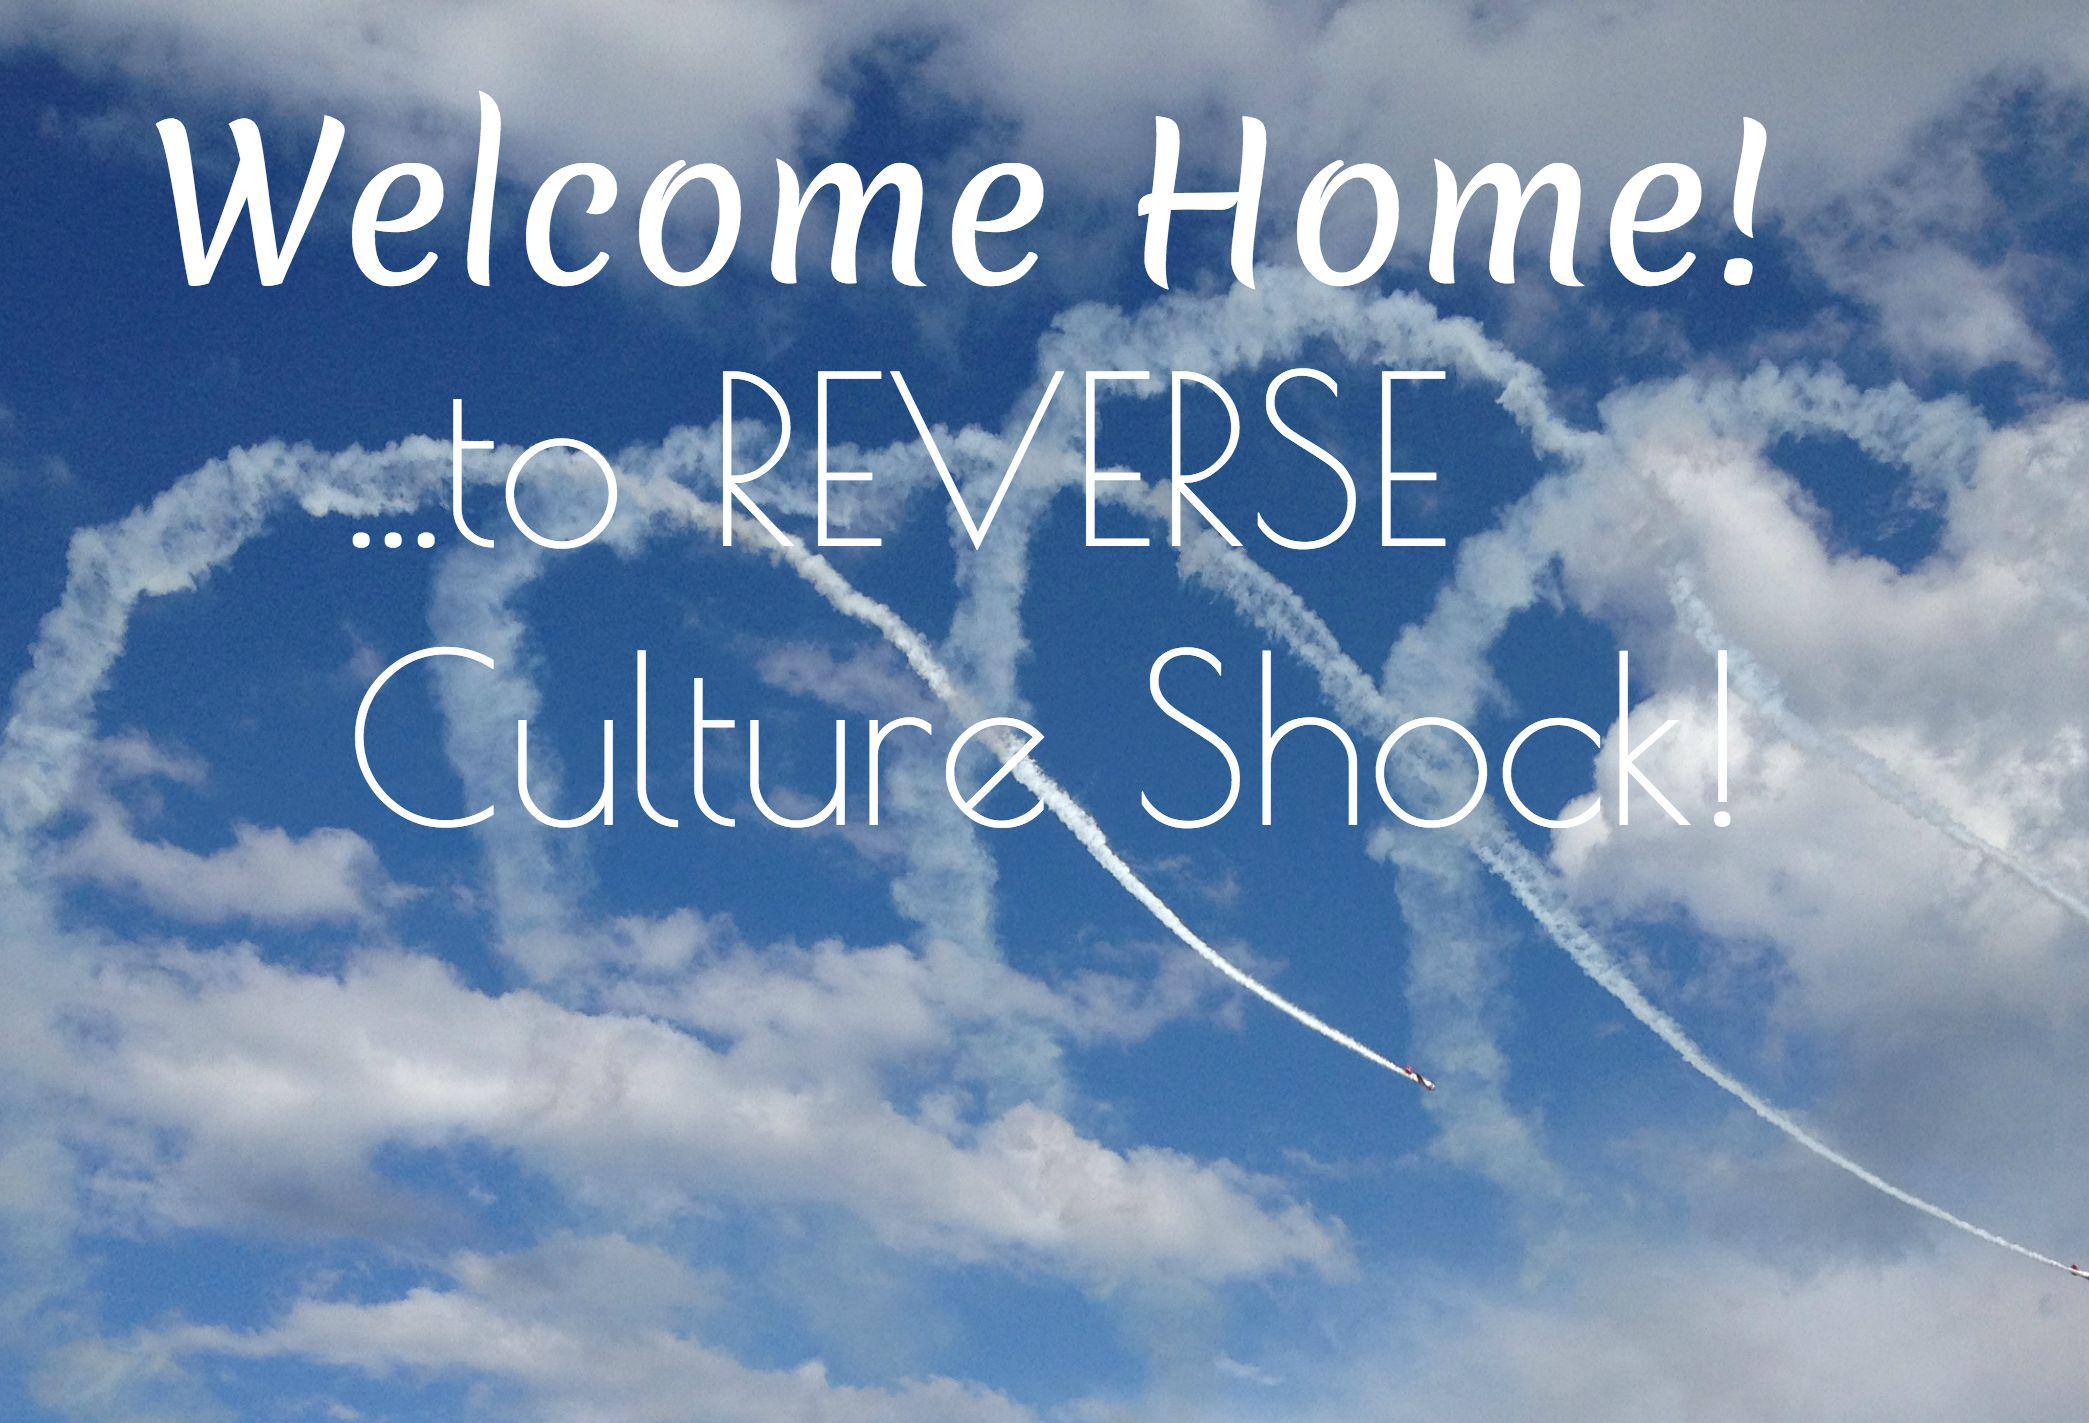 reverse culture shock Reverse culture shock, or re-entry, is simply a common reaction to returning  home  but it's also up to you to find ways to overcome such negative reactions.